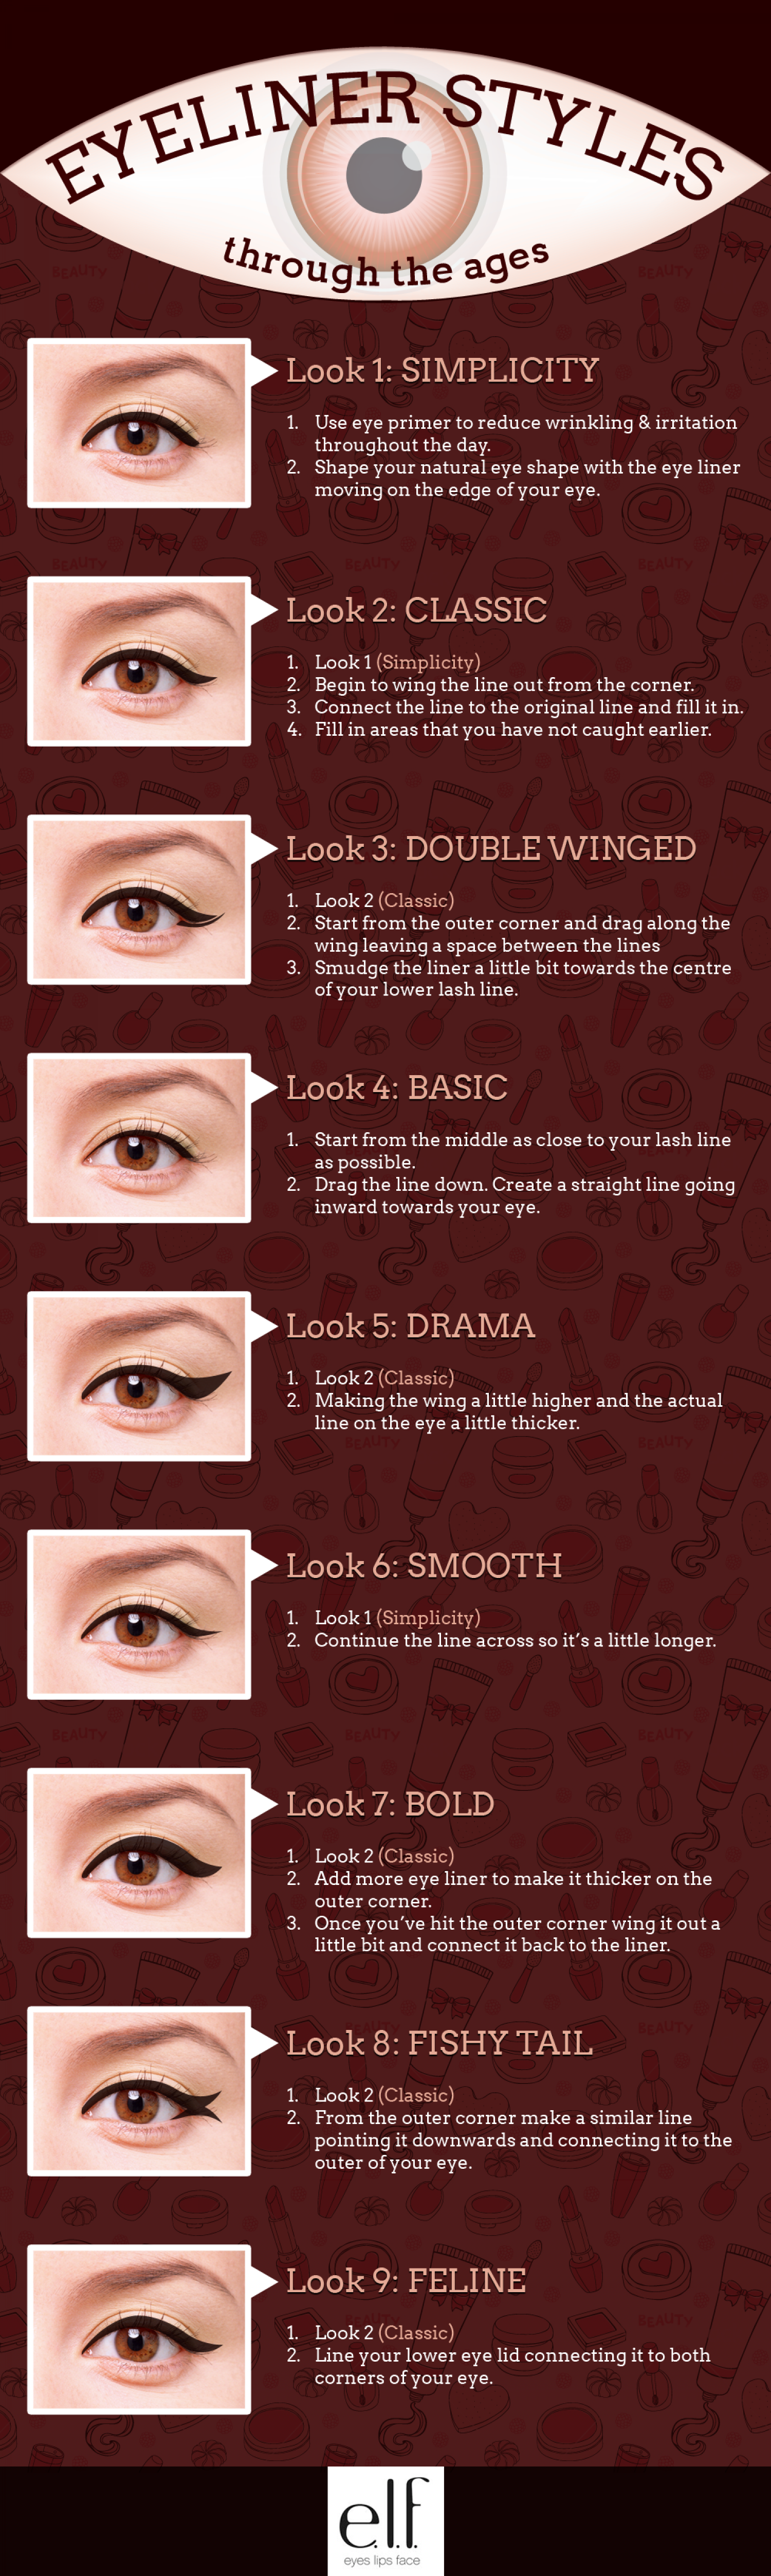 Eyeliner Styles Through the Ages Infographic